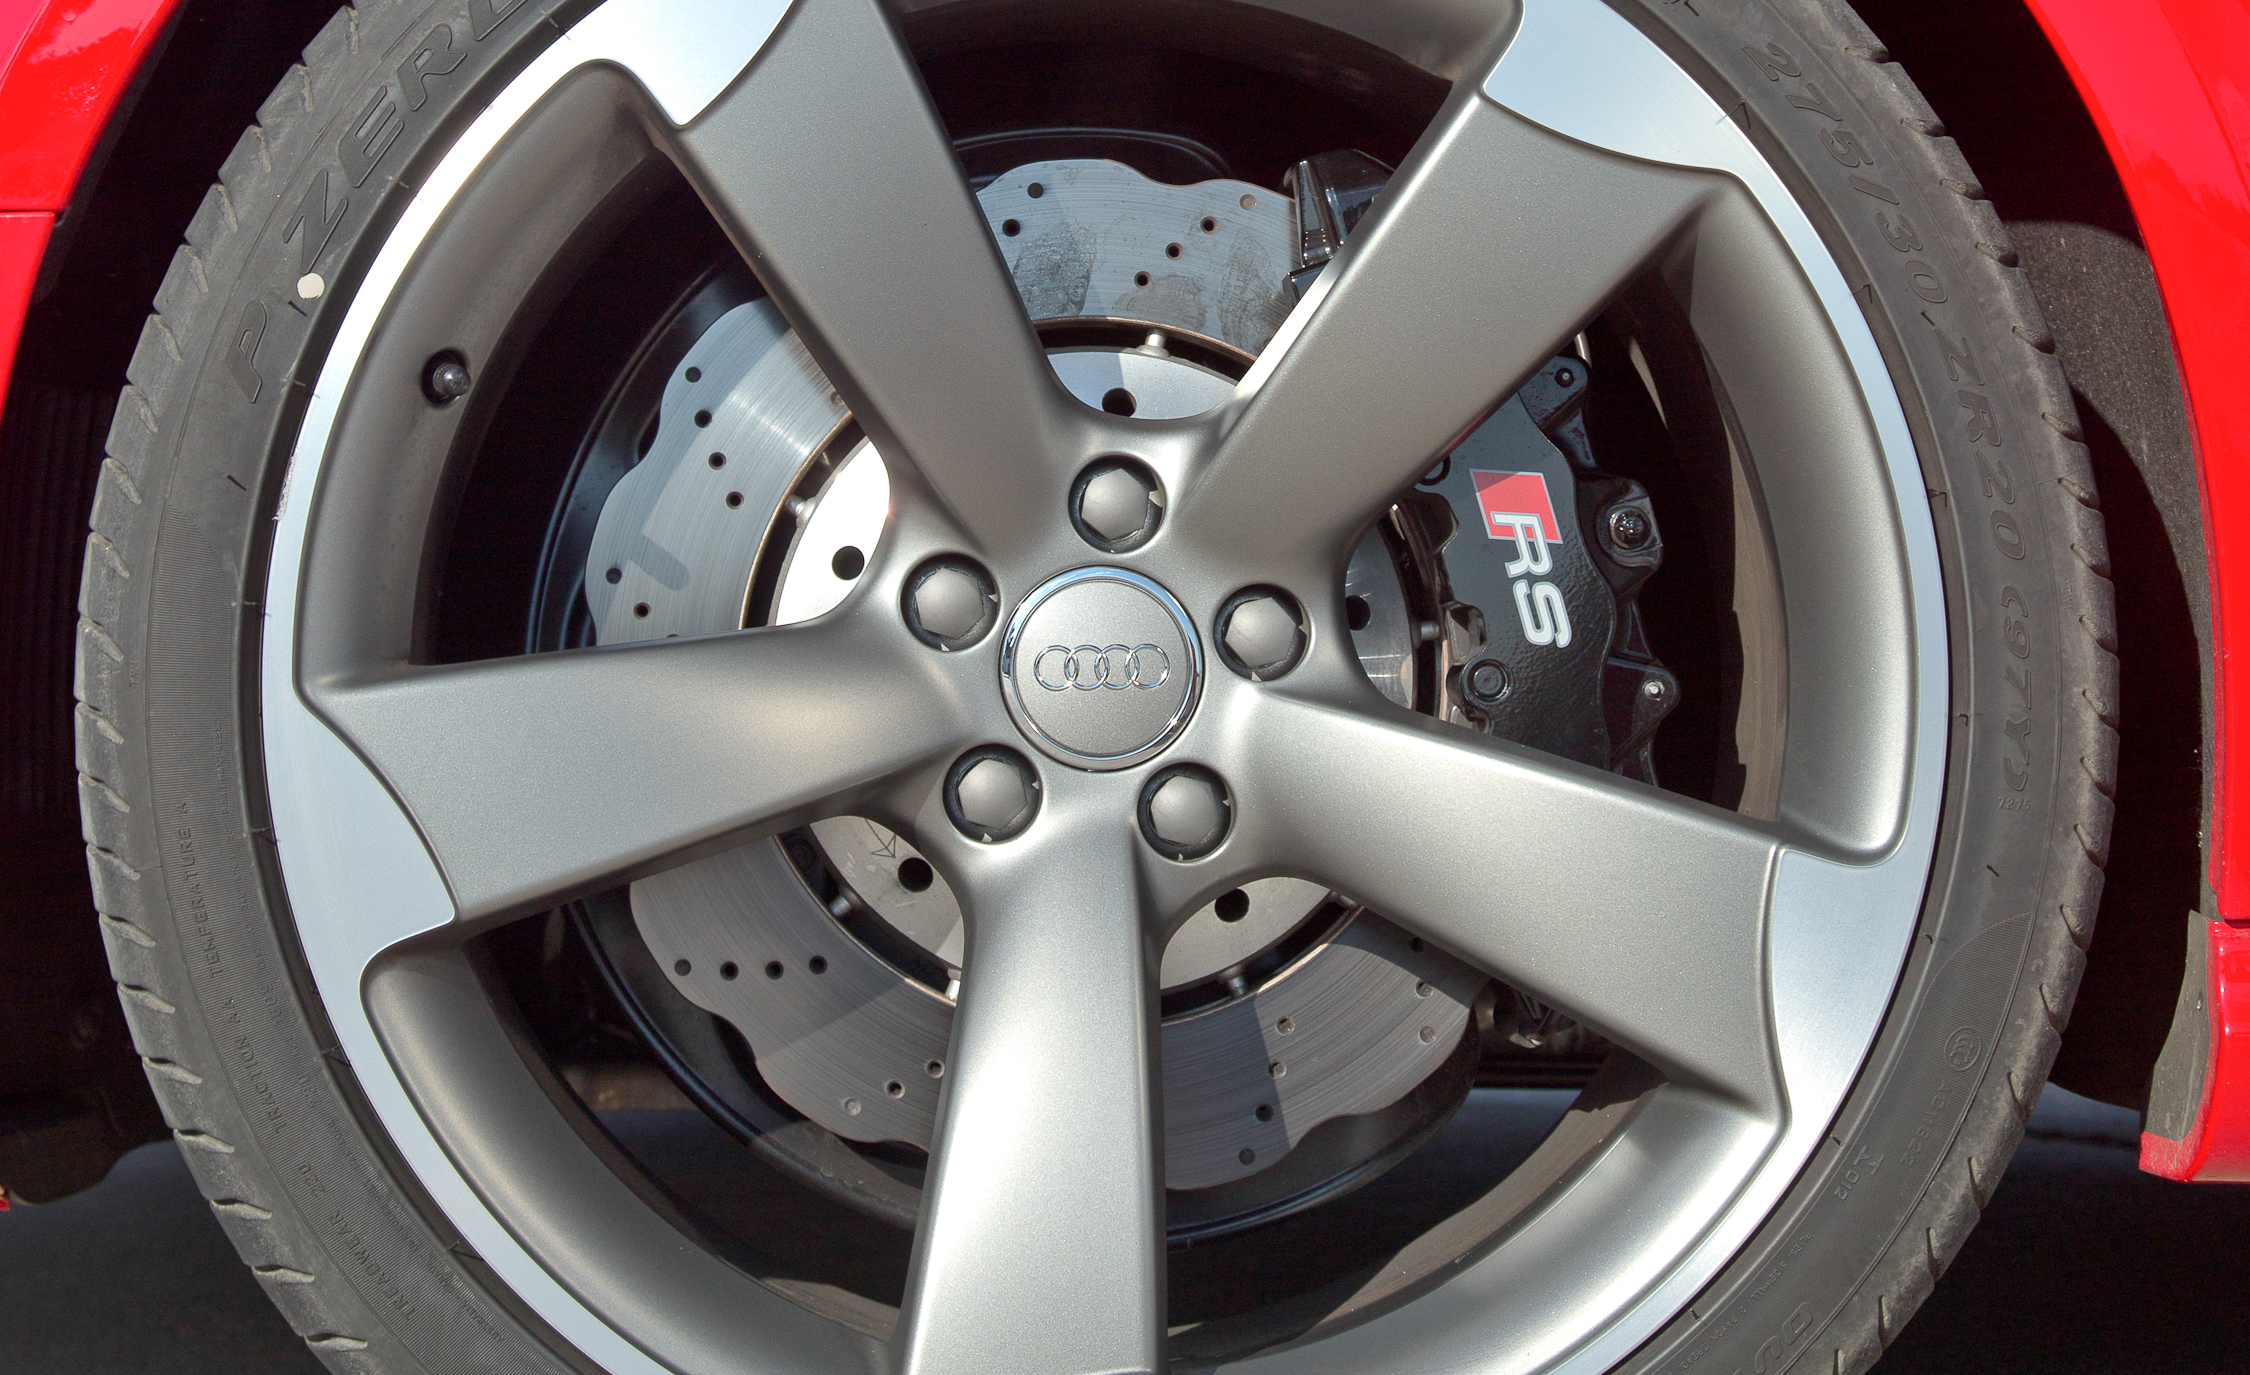 2013 Audi RS 5 Exterior View Wheel Break Caliper And Velg (Photo 18 of 41)